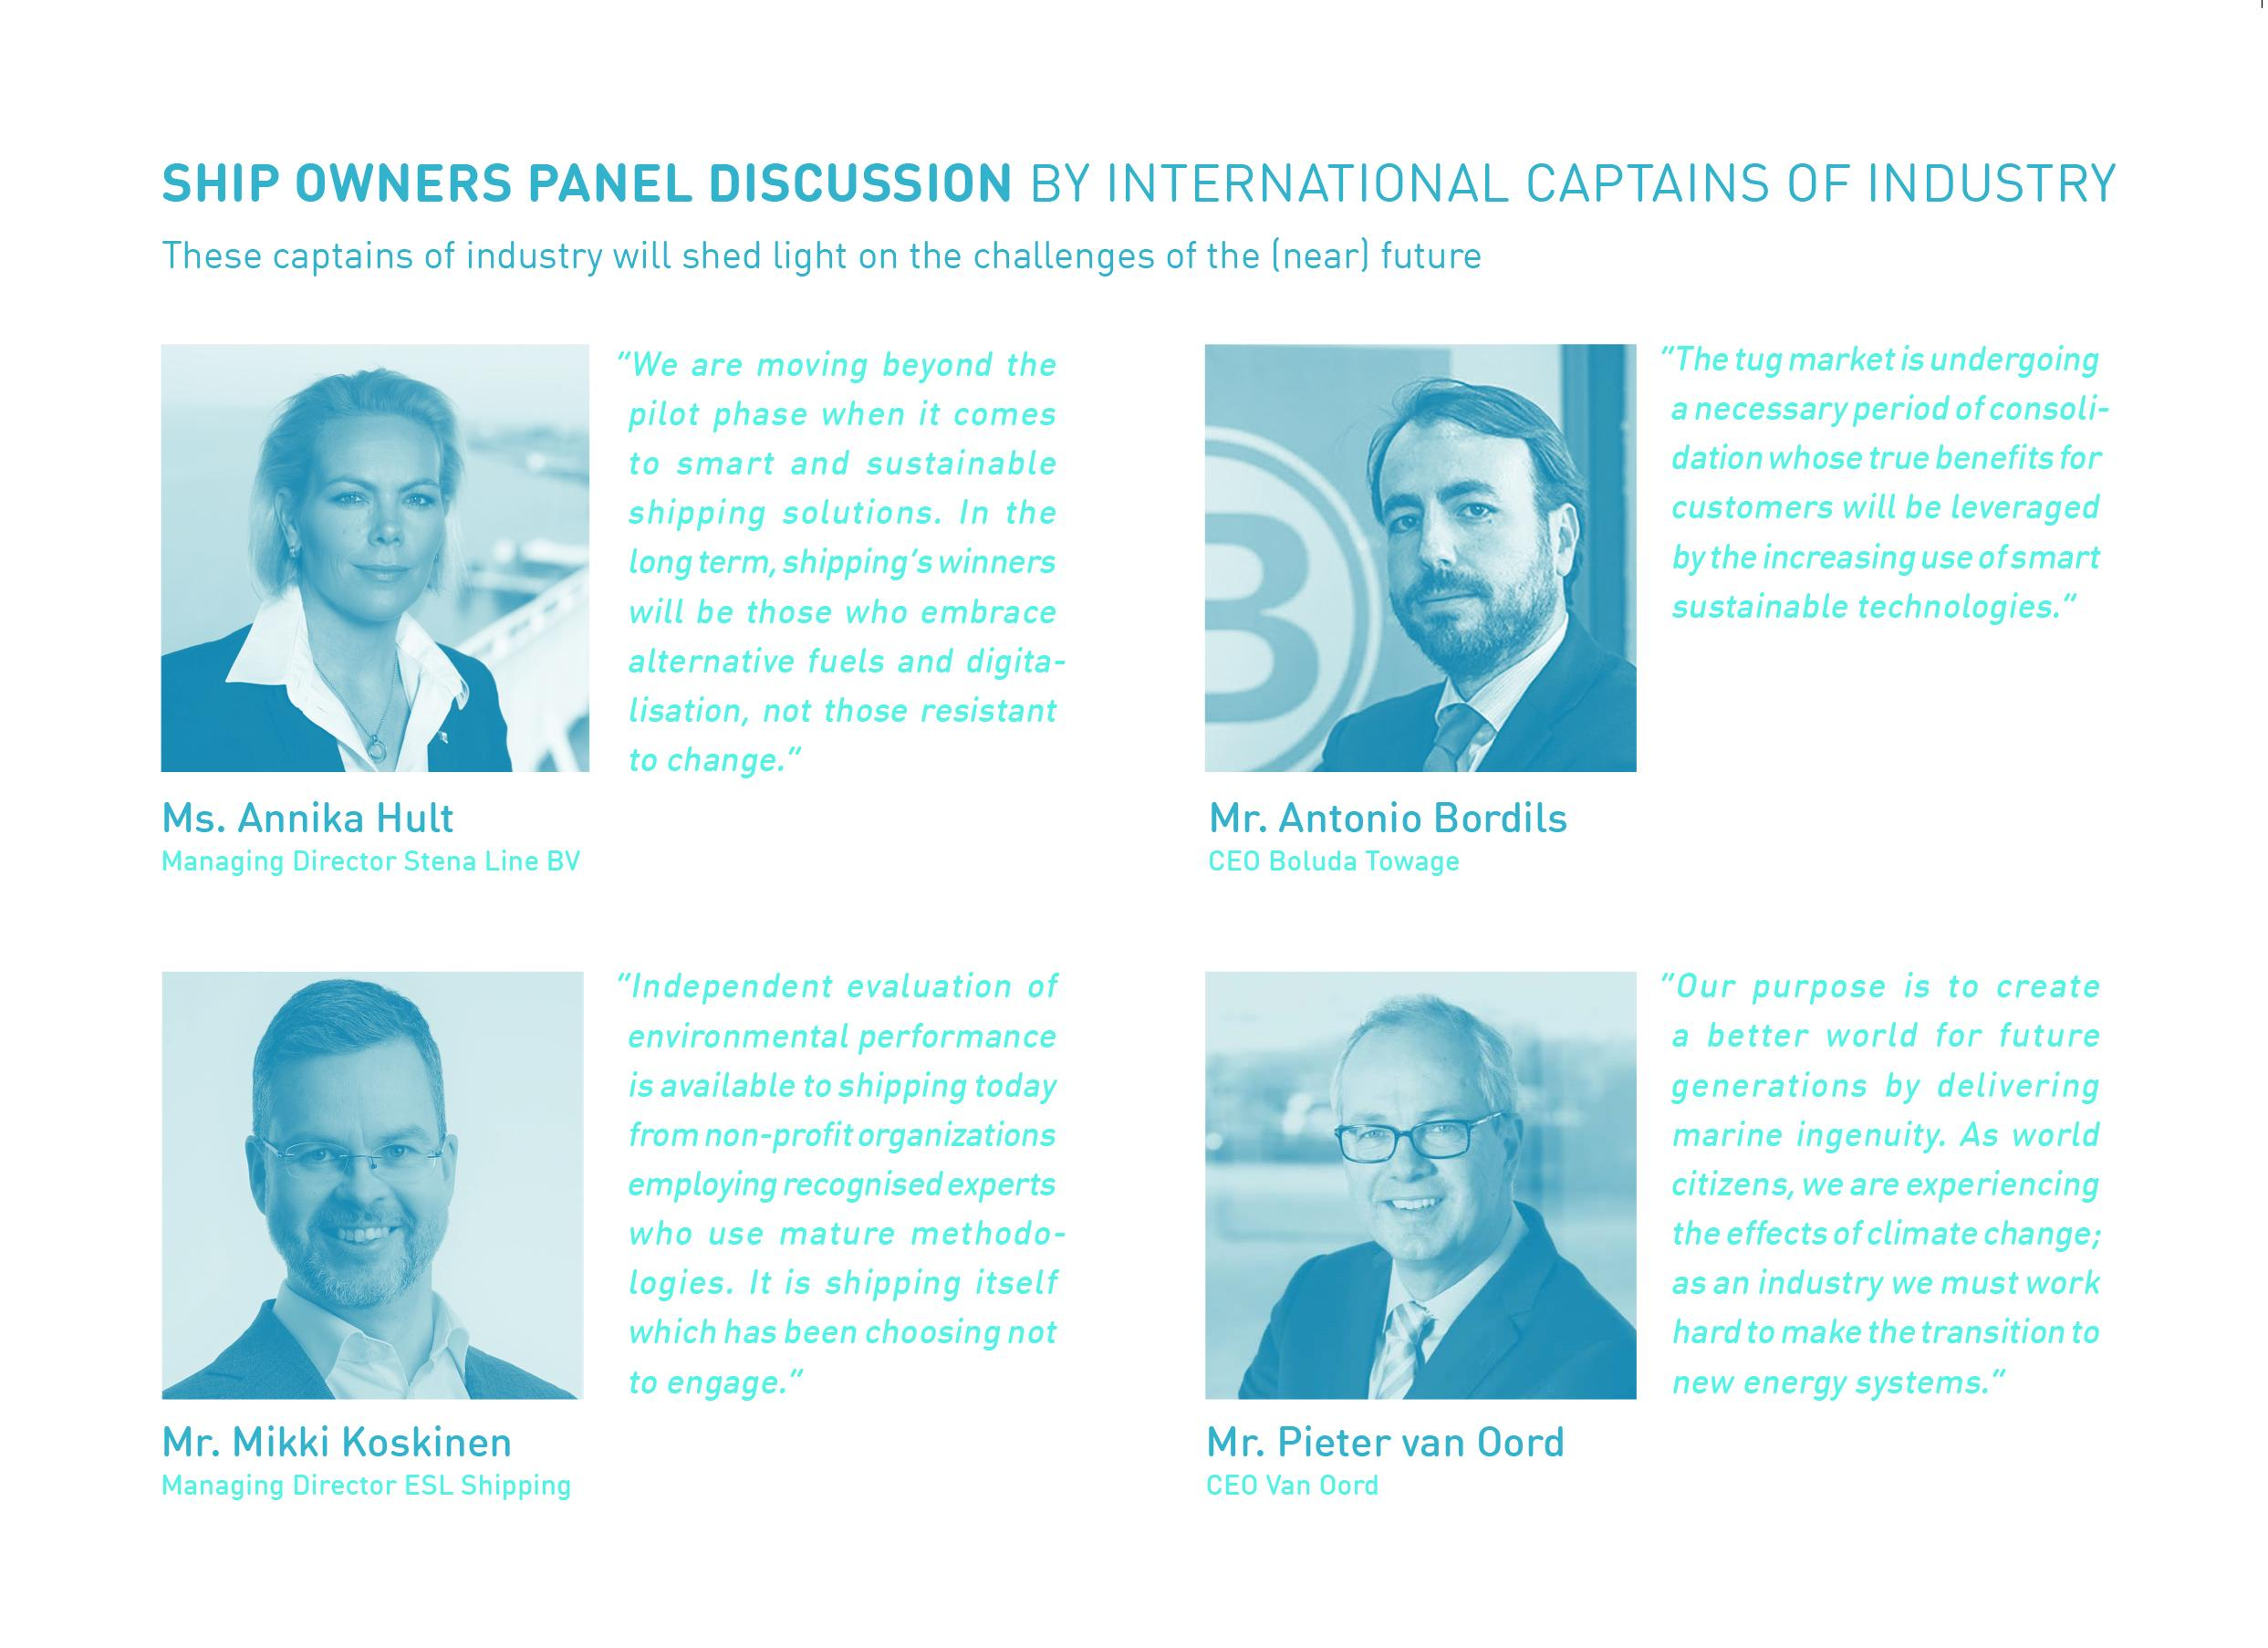 Press release: Europort 2019 launch led by shipowners summit